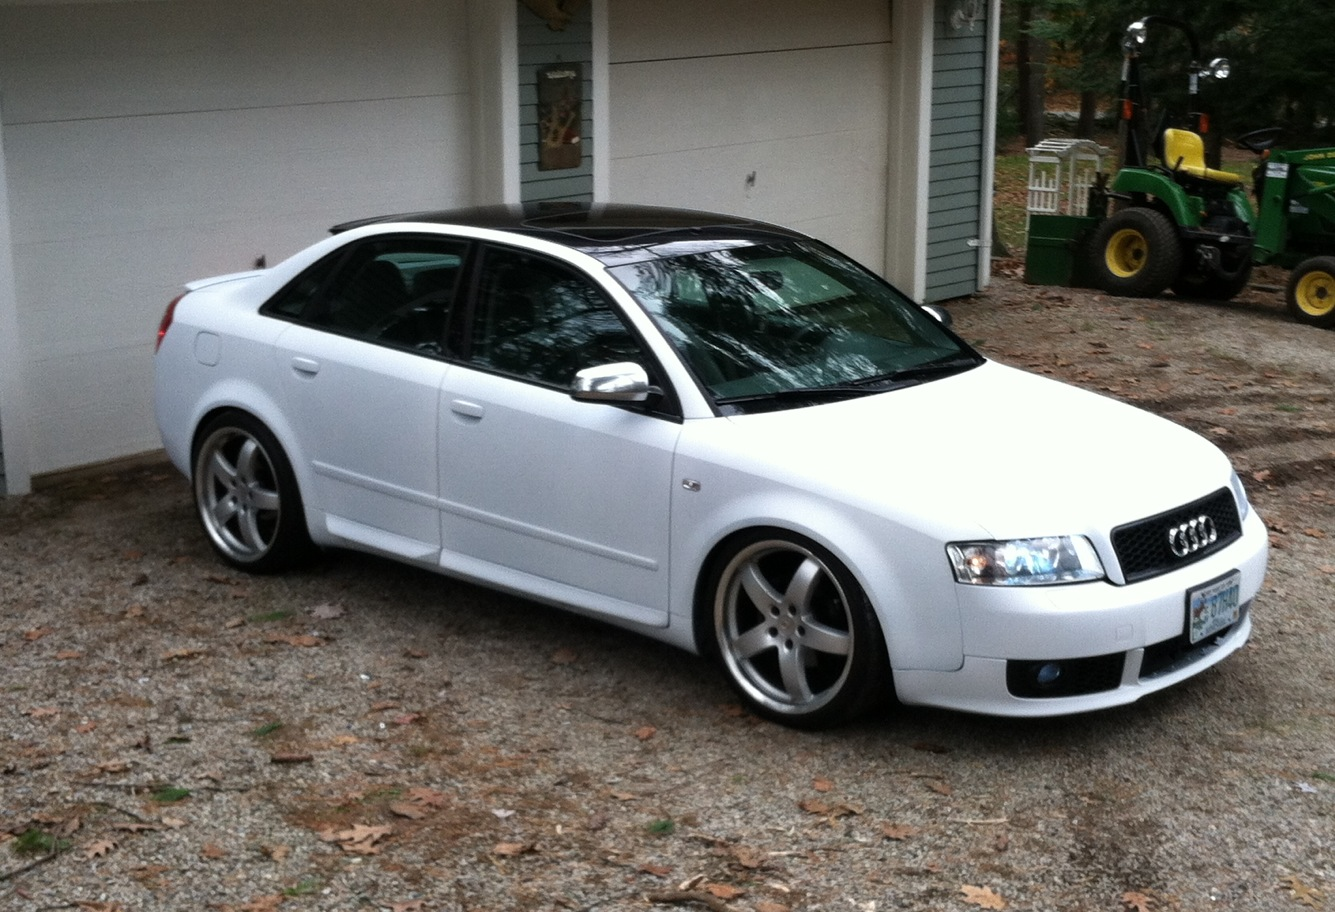 2002_audi_a4_4_dr_1_8t_quattro_turbo_awd_sedan pic 3142344700600718899 2002 audi a4 1 8 t quattro related infomation,specifications  at mifinder.co